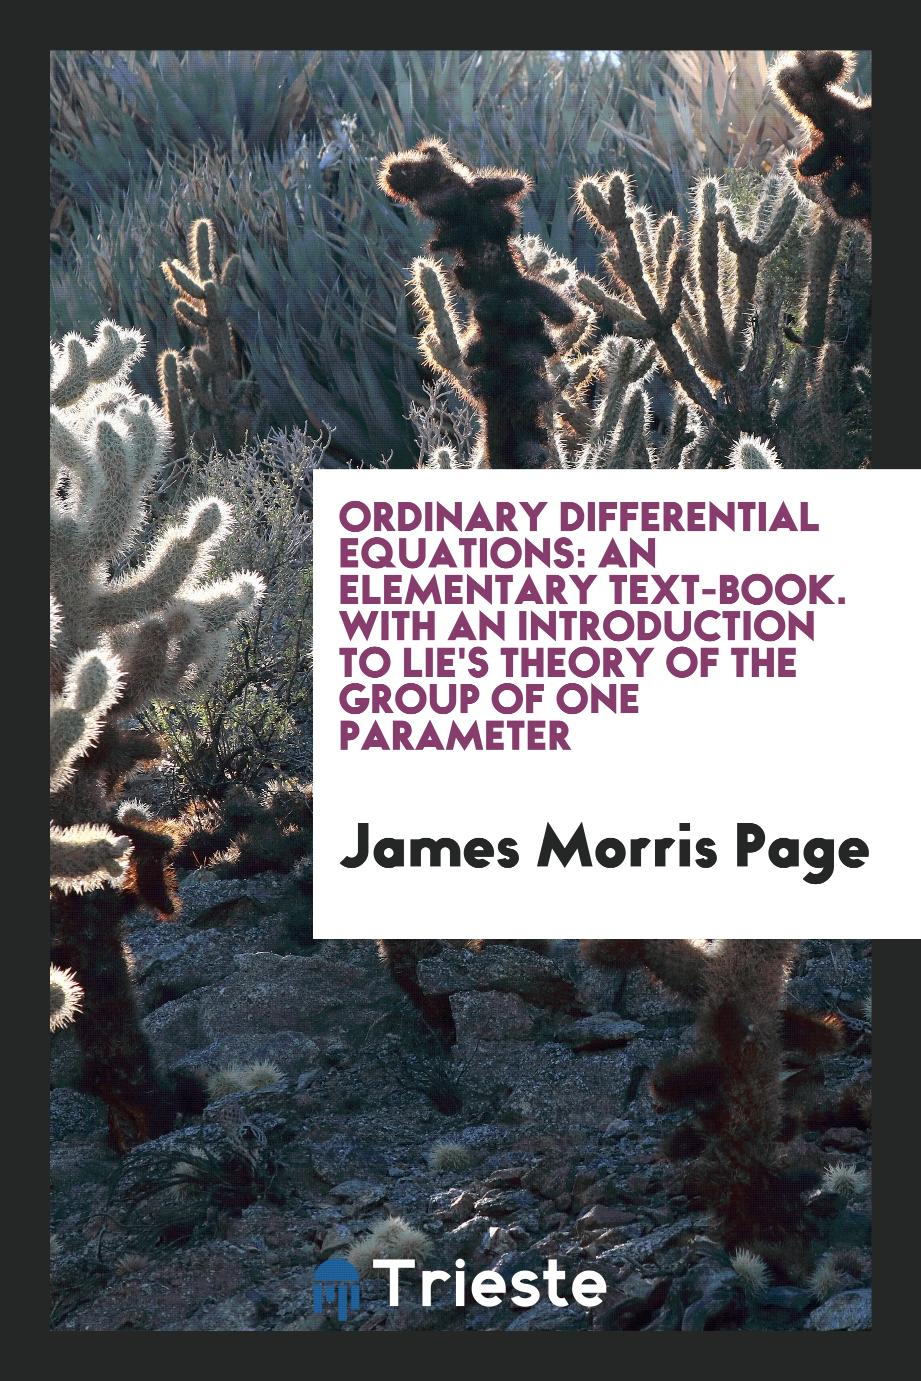 Ordinary differential equations: an elementary text-book. With an introduction to Lie's theory of the group of one parameter